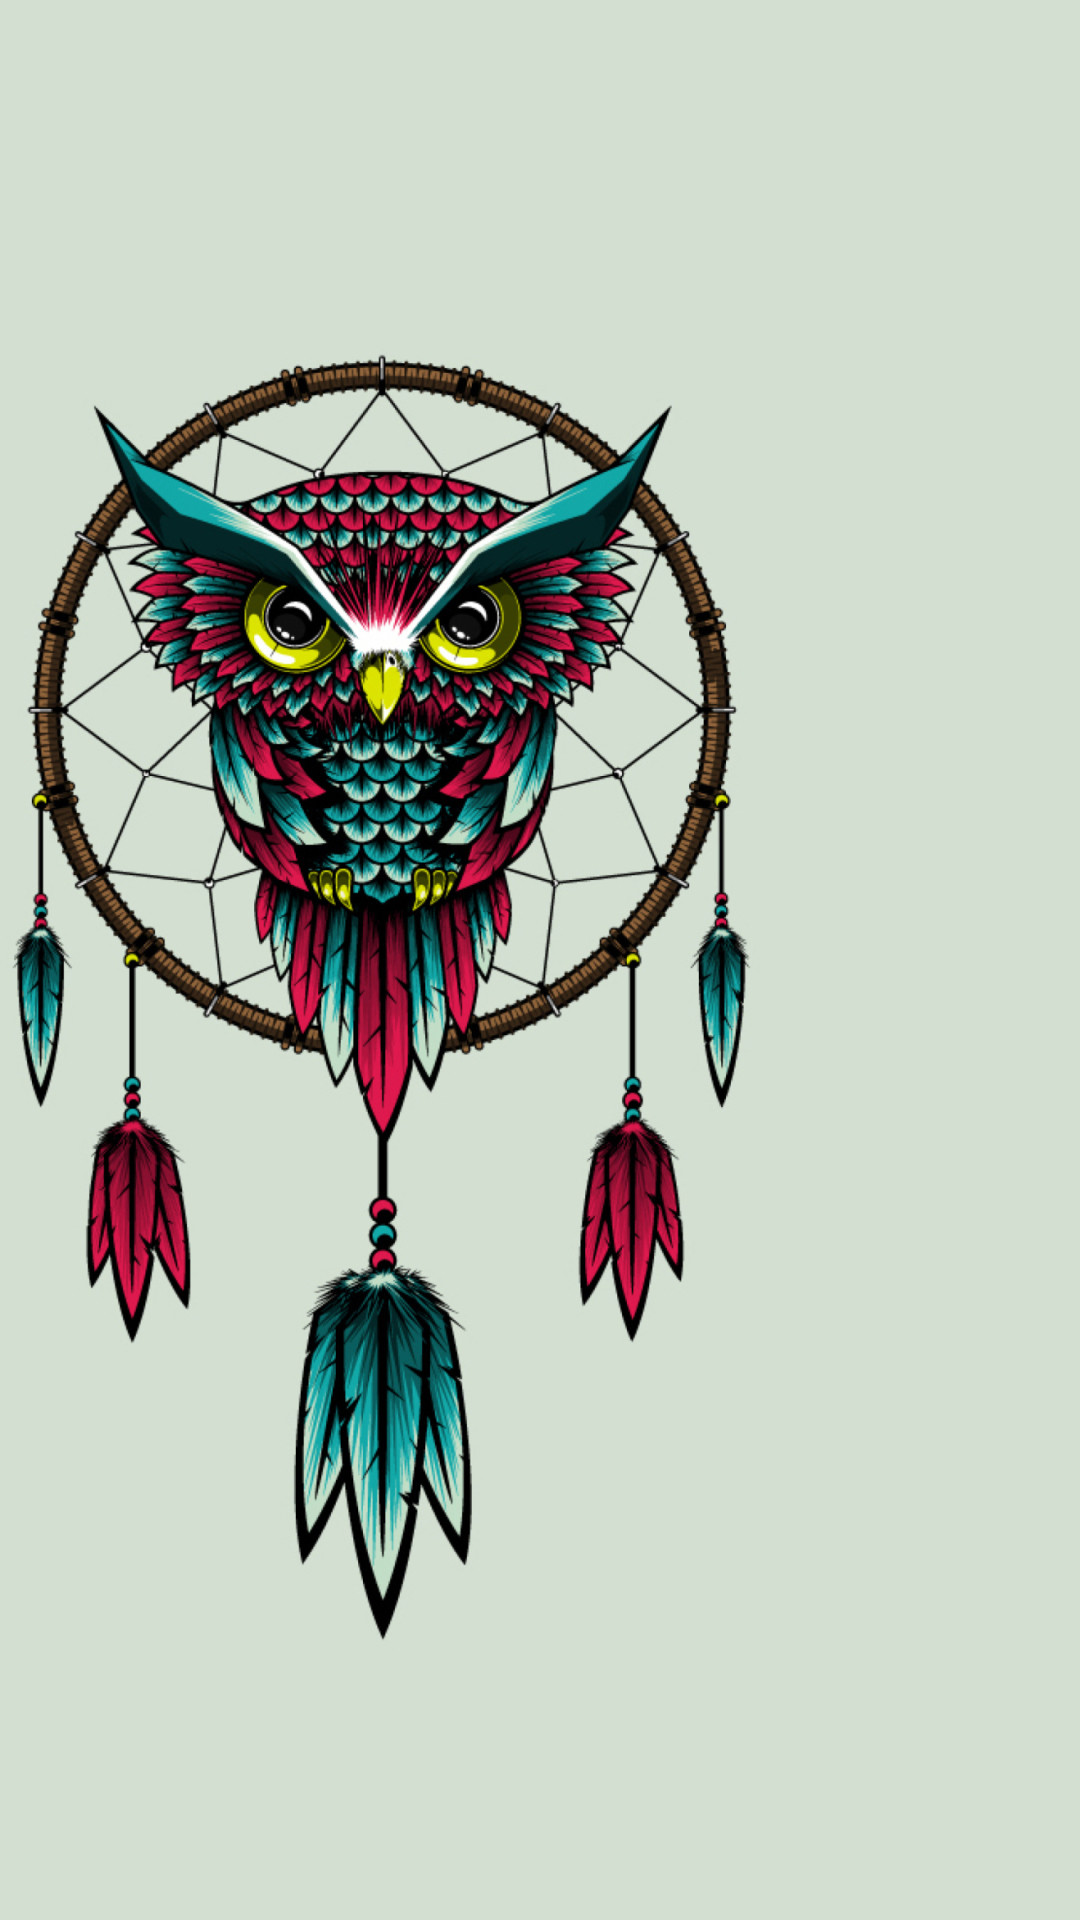 Owl Bird Dreamcatcher – Tap to see more beautifully creative dreamcatcher  wallpapers!